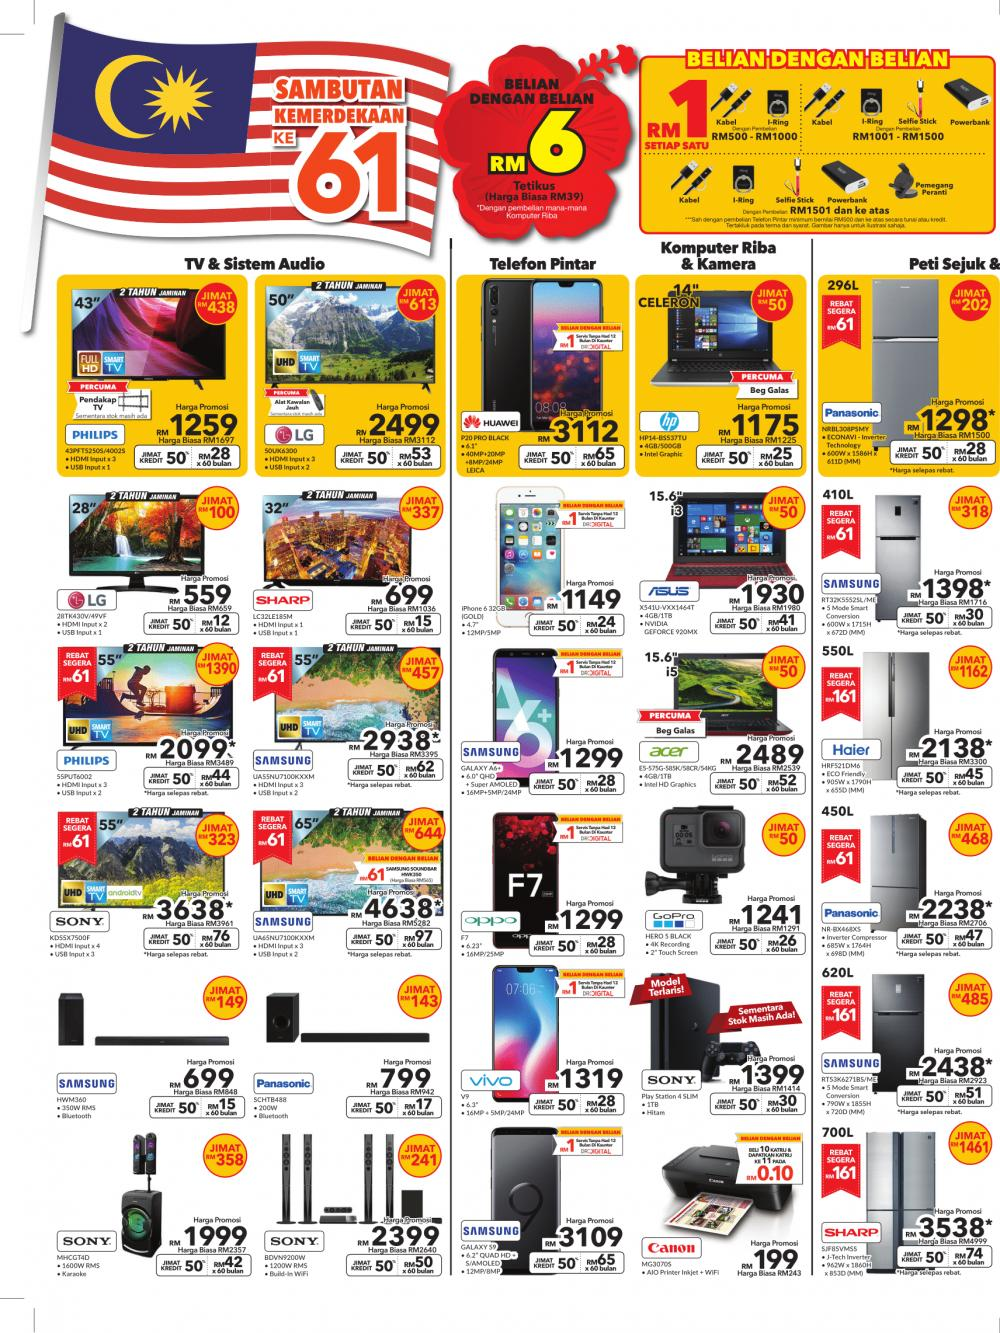 COURTS Promotion Catalogue at East Malaysia (26 July 2018.